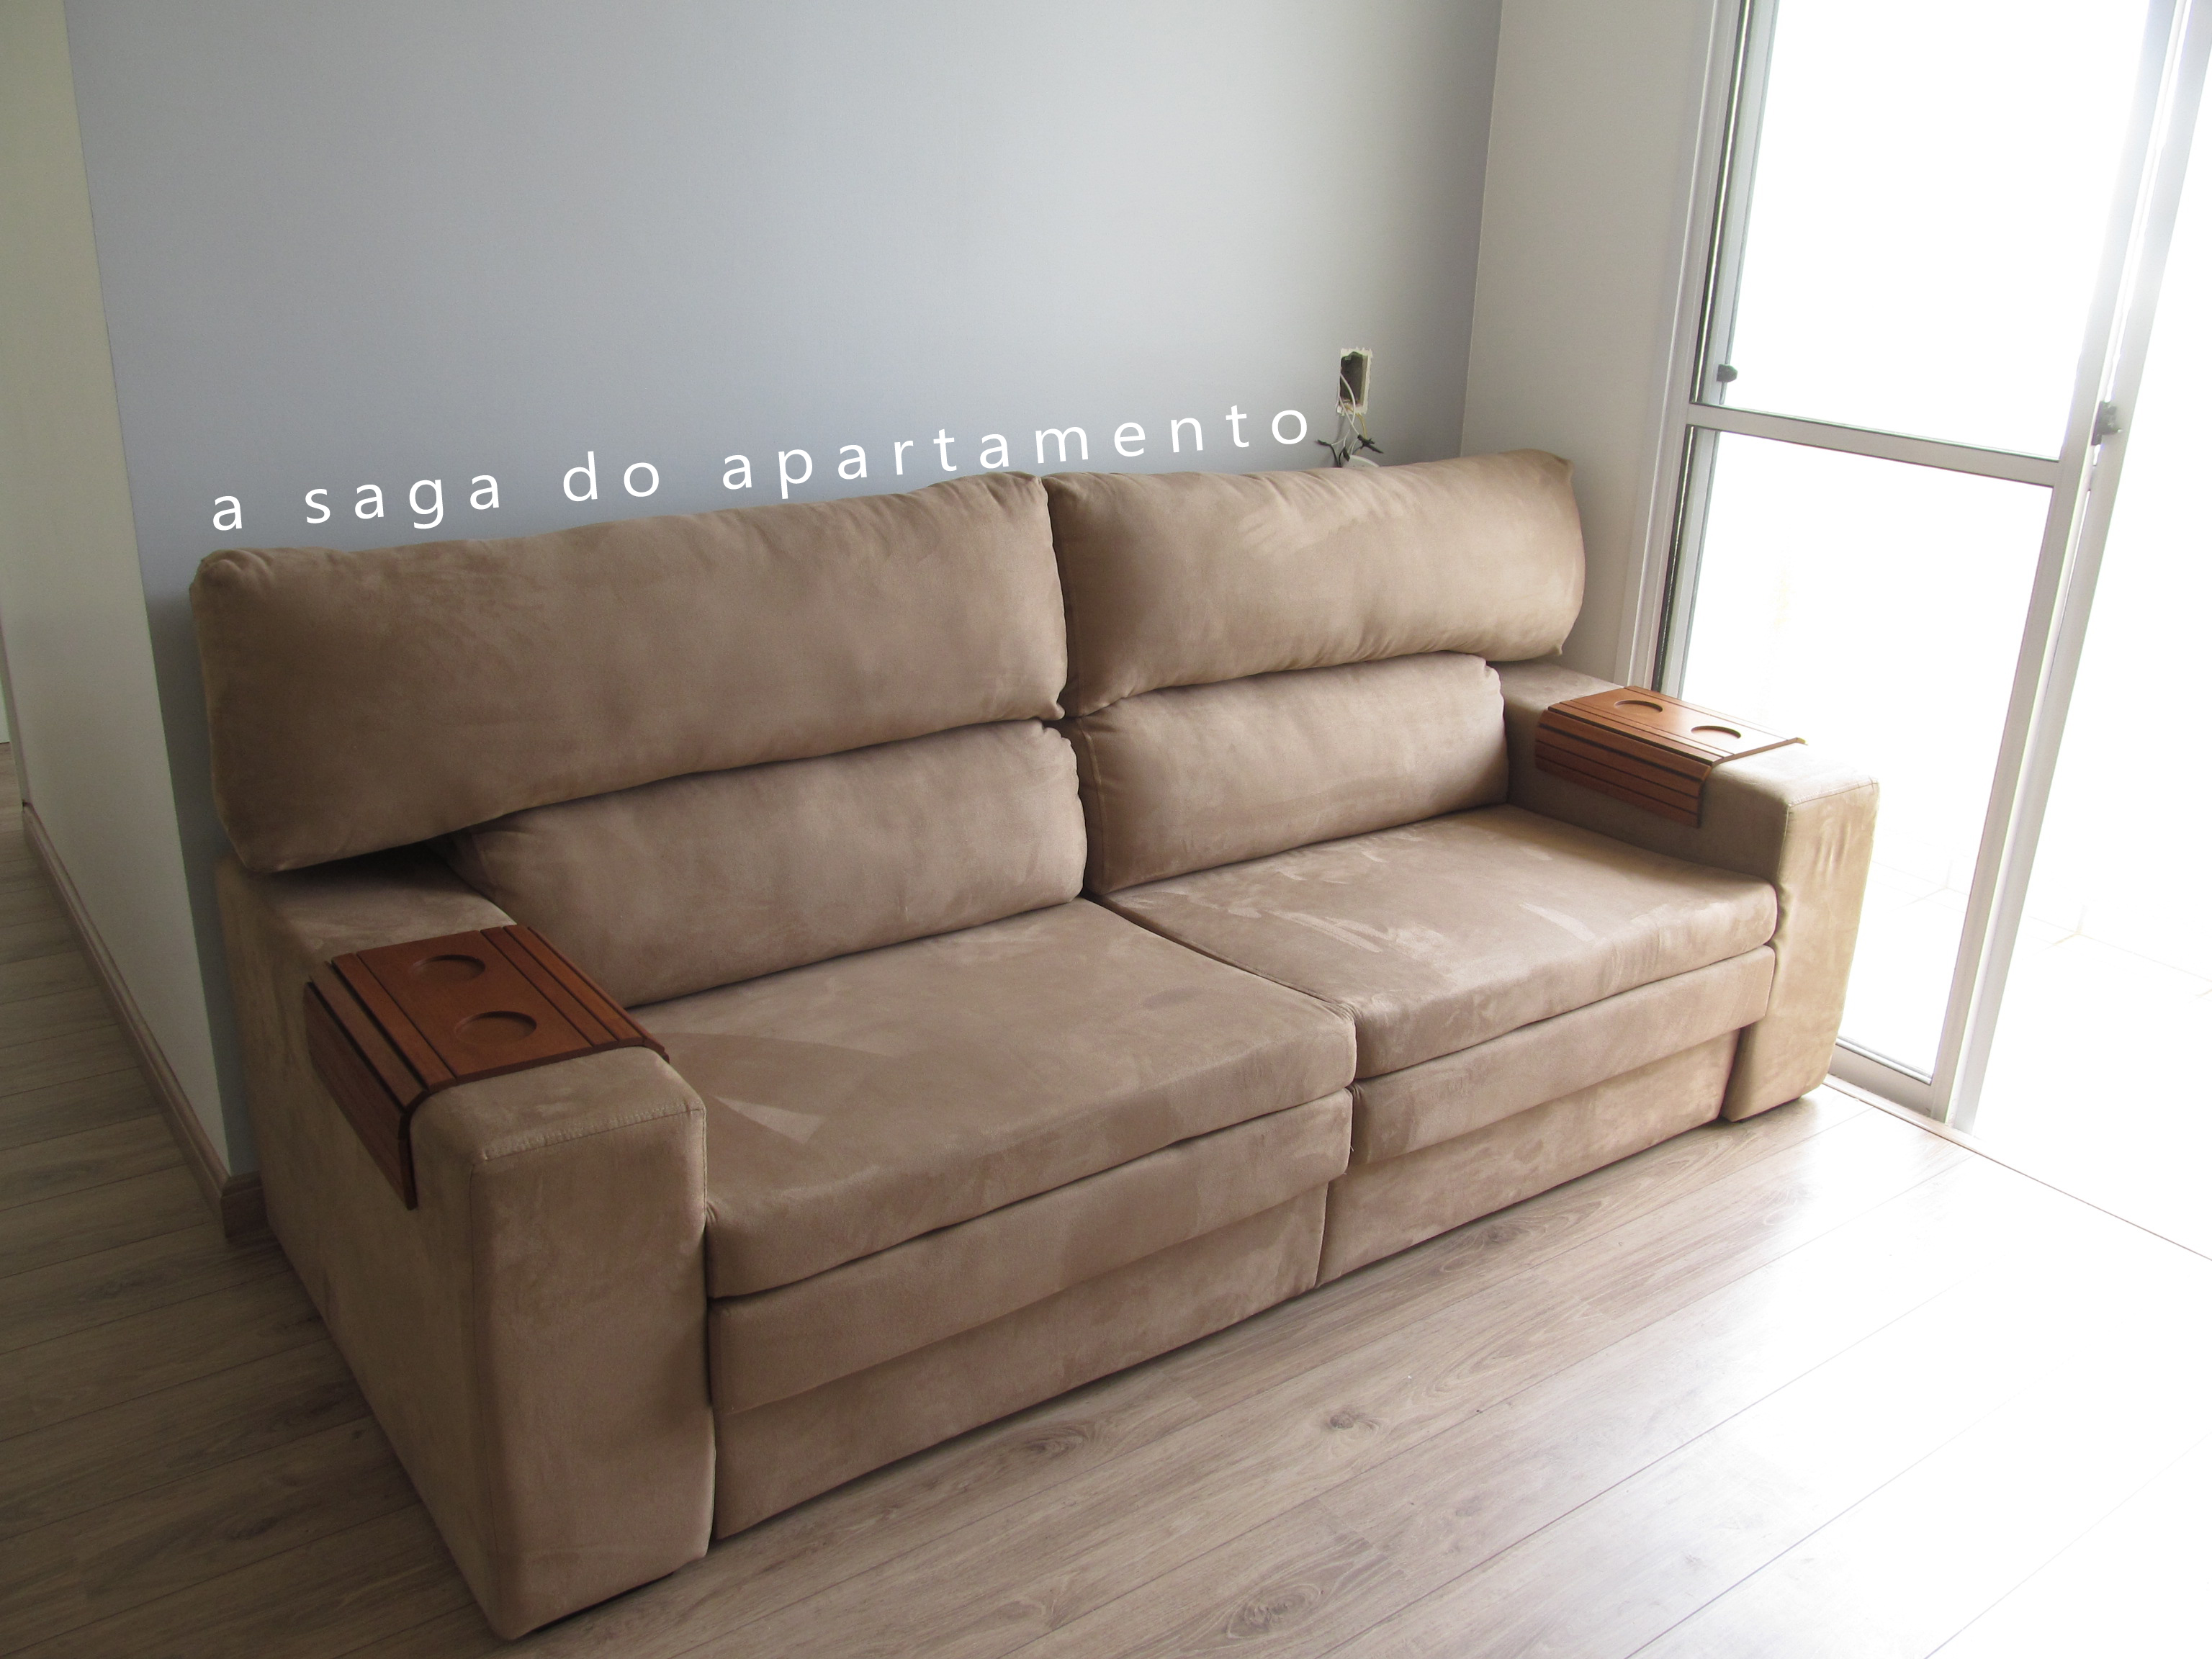 Sof retr til com chaise a saga do apartamento for Sofas pequenos medidas